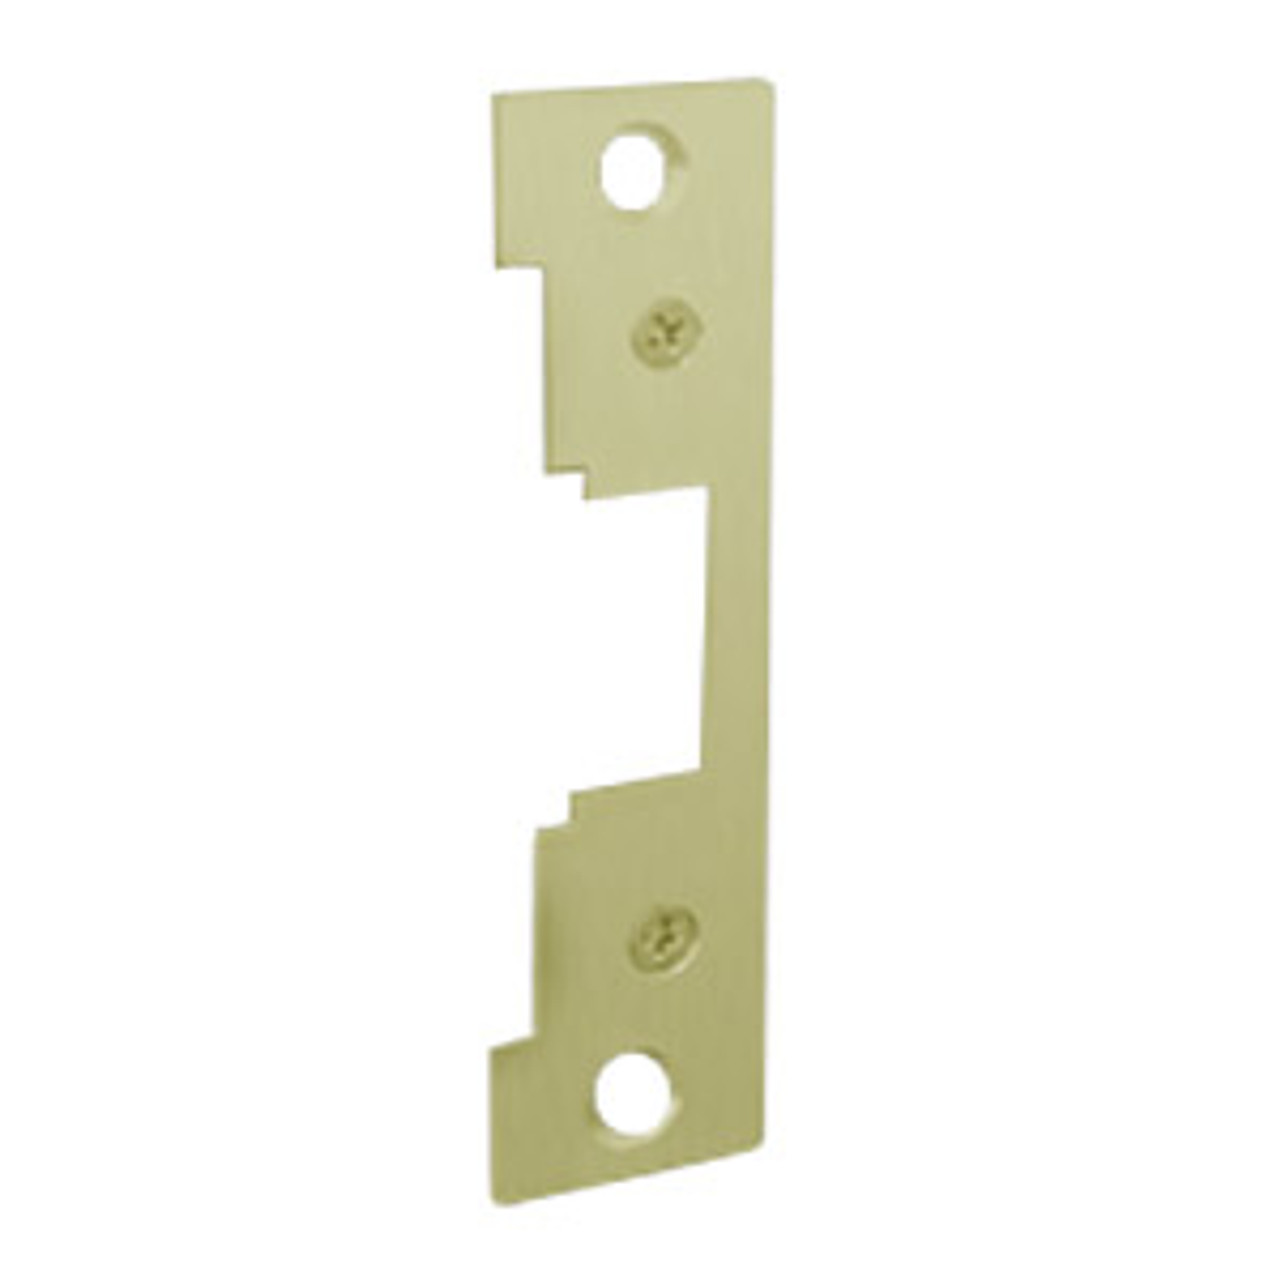 """791-605 Hes 4-7/8 x 1-1/4"""" Faceplate in Bright Brass Finish"""